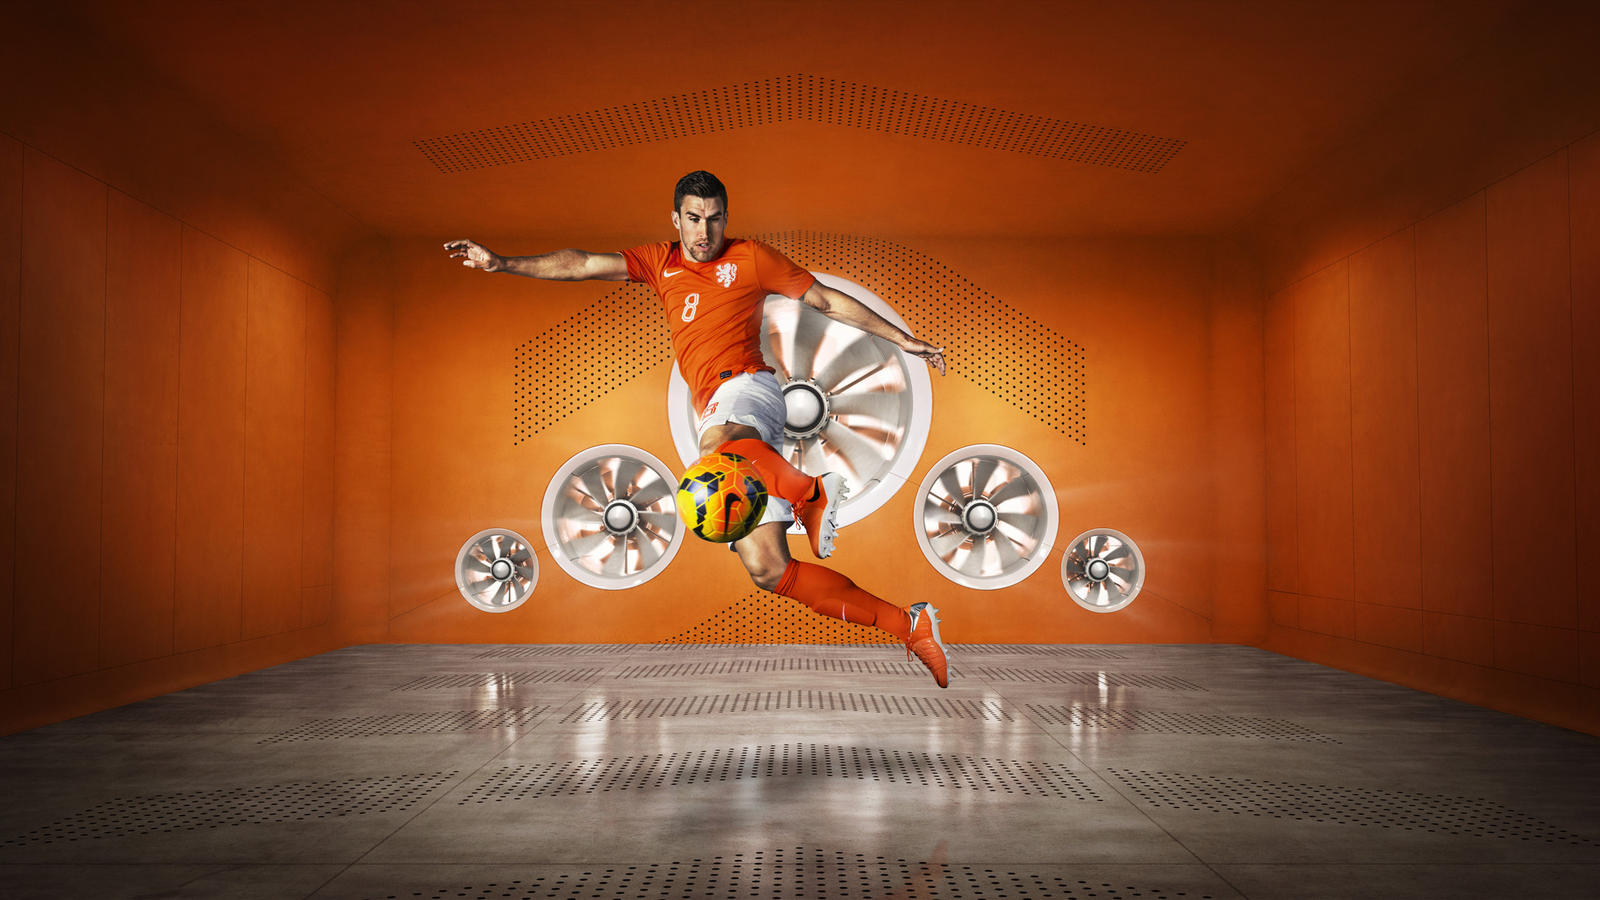 Nike News - Netherlands Unveils 125th Anniversary Dutch Home Kit with Nike